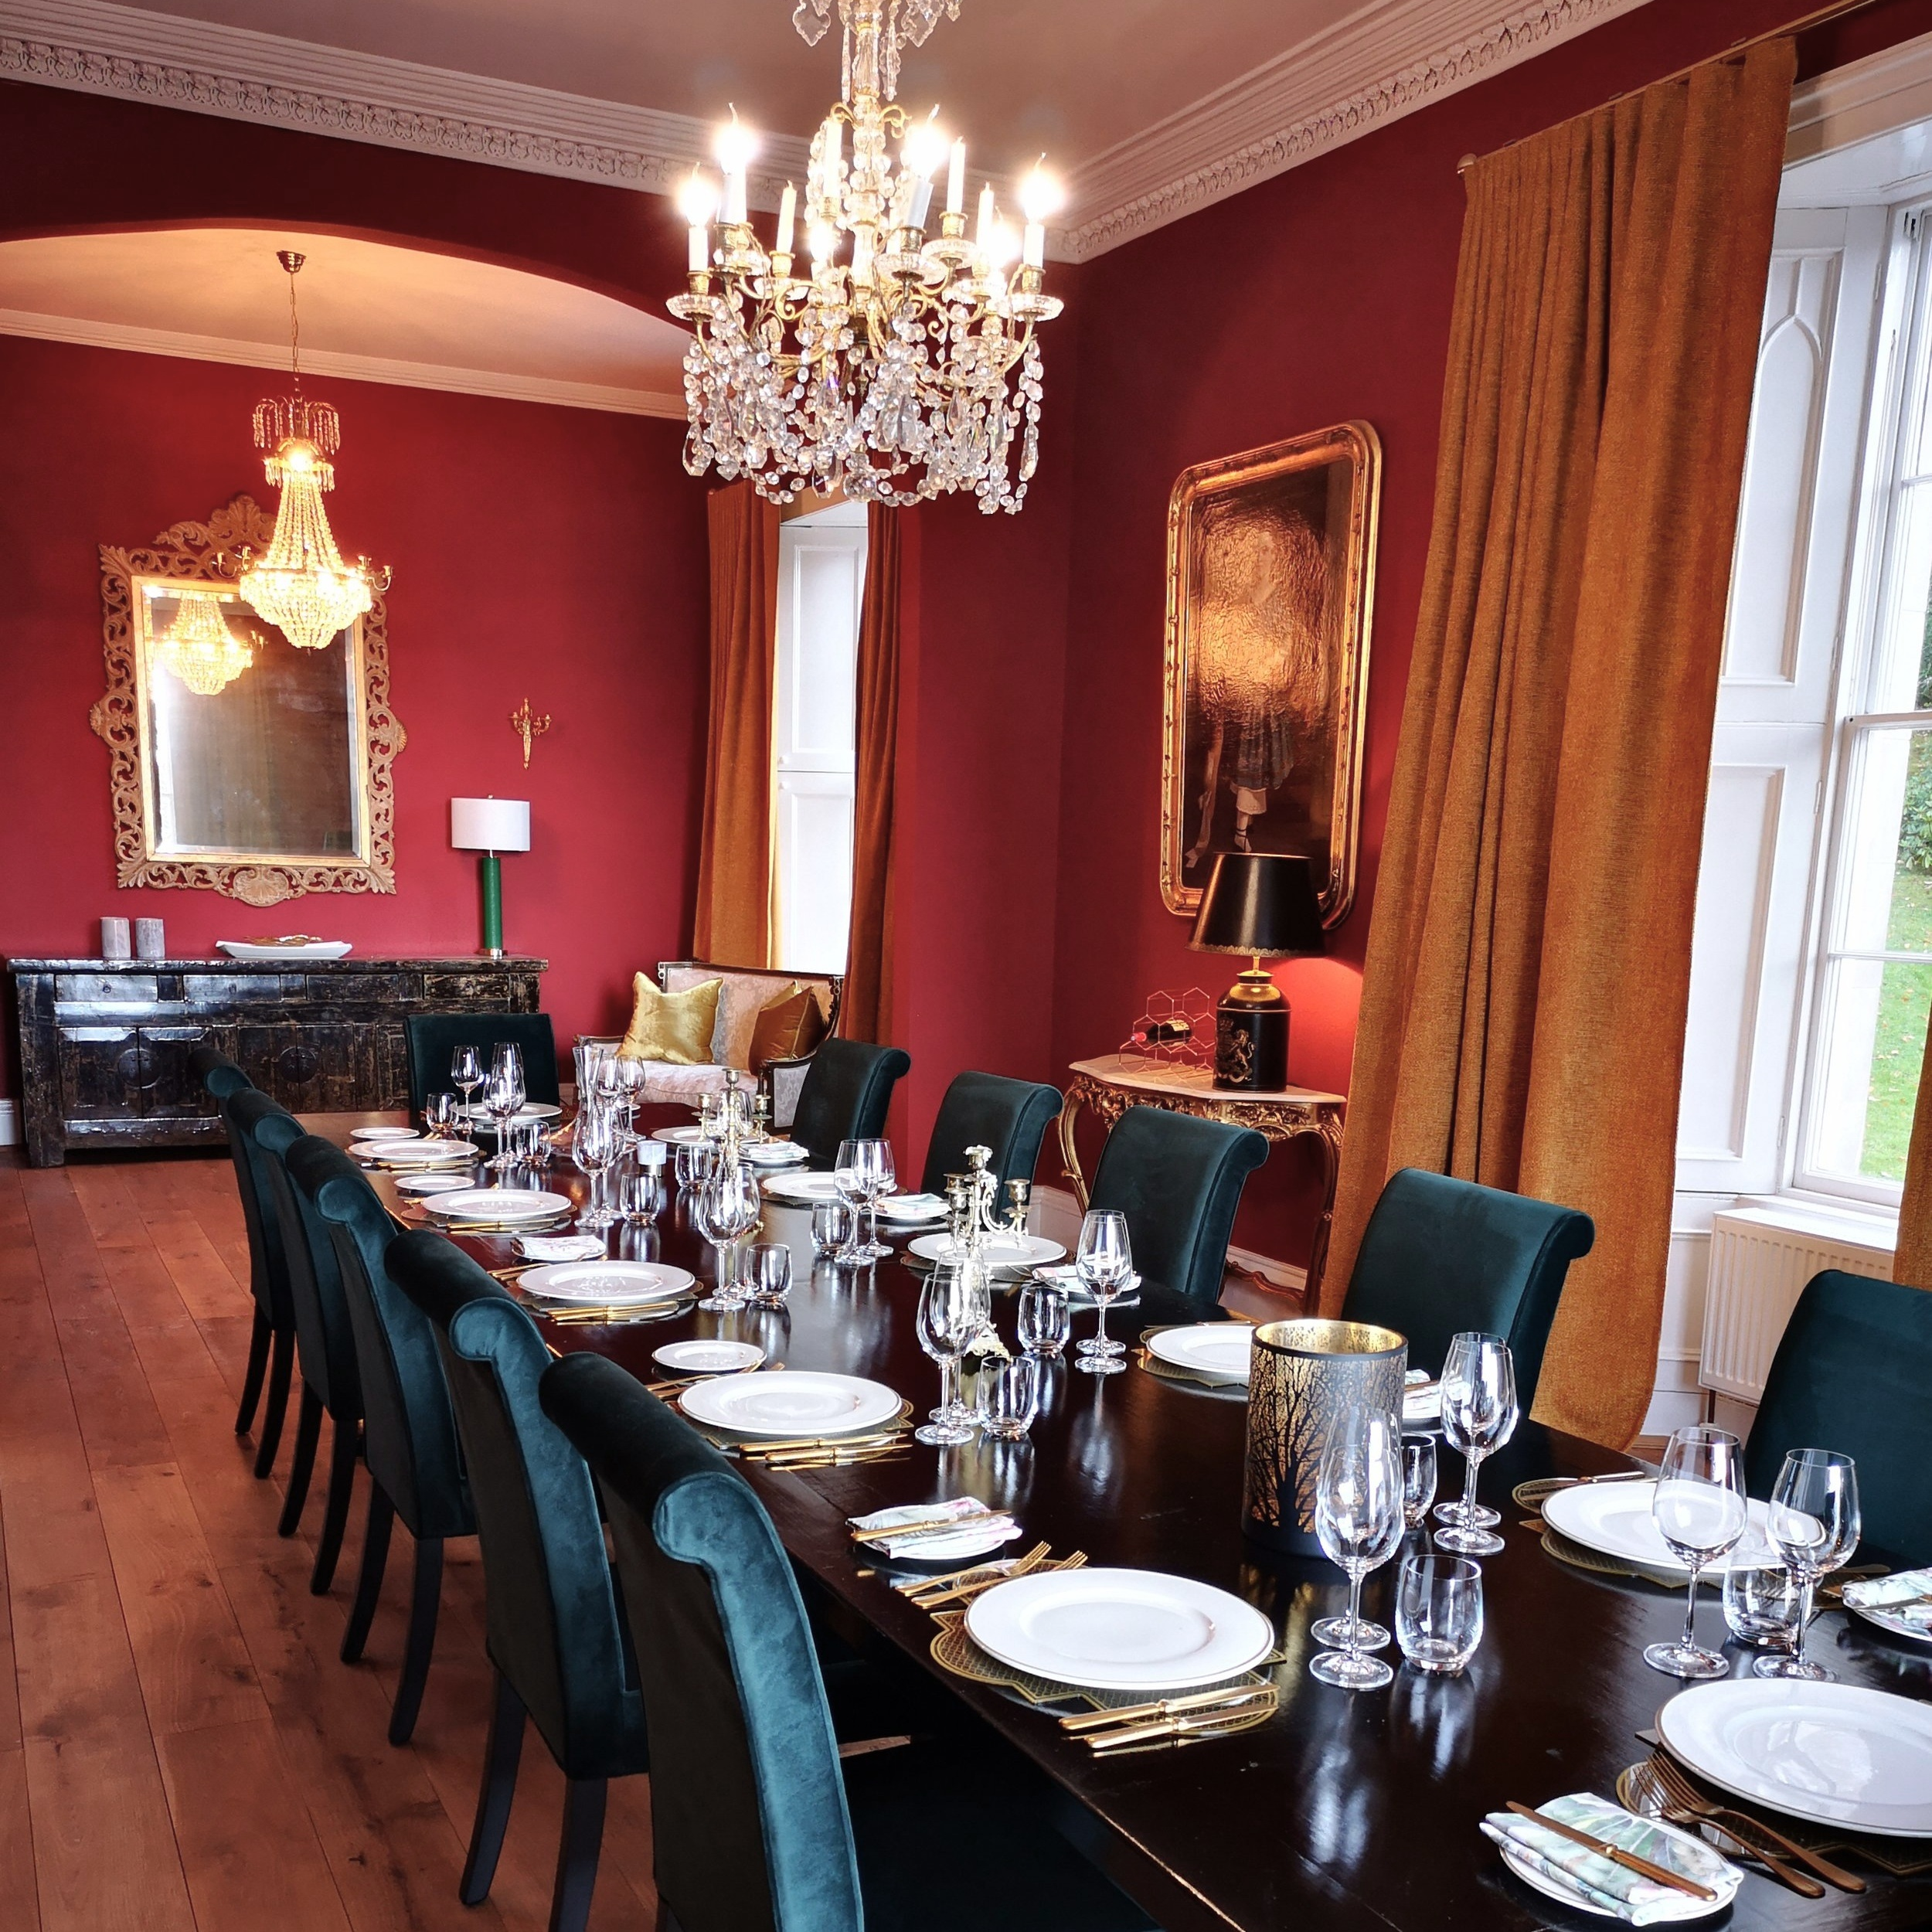 Dining Room - The grand dining room seats up to 30 guests against dramatic decor that harks back to the glory days of Balnakeilly House. Enjoy the finest food in a superb setting warmed by the open fire.